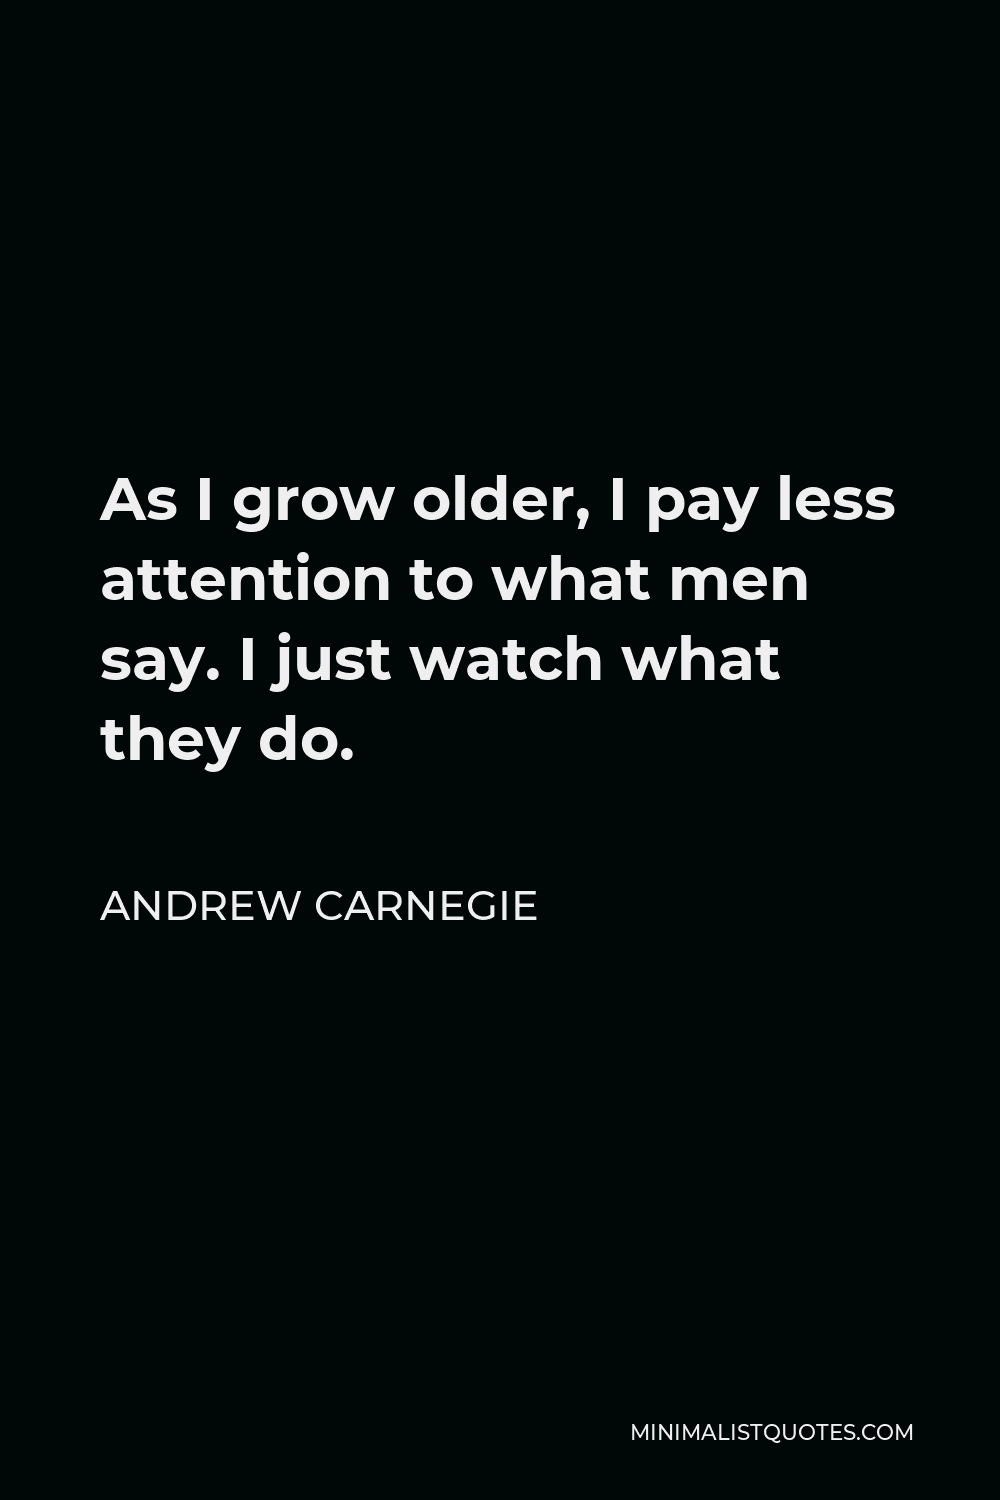 Andrew Carnegie Quote - As I grow older, I pay less attention to what men say. I just watch what they do.